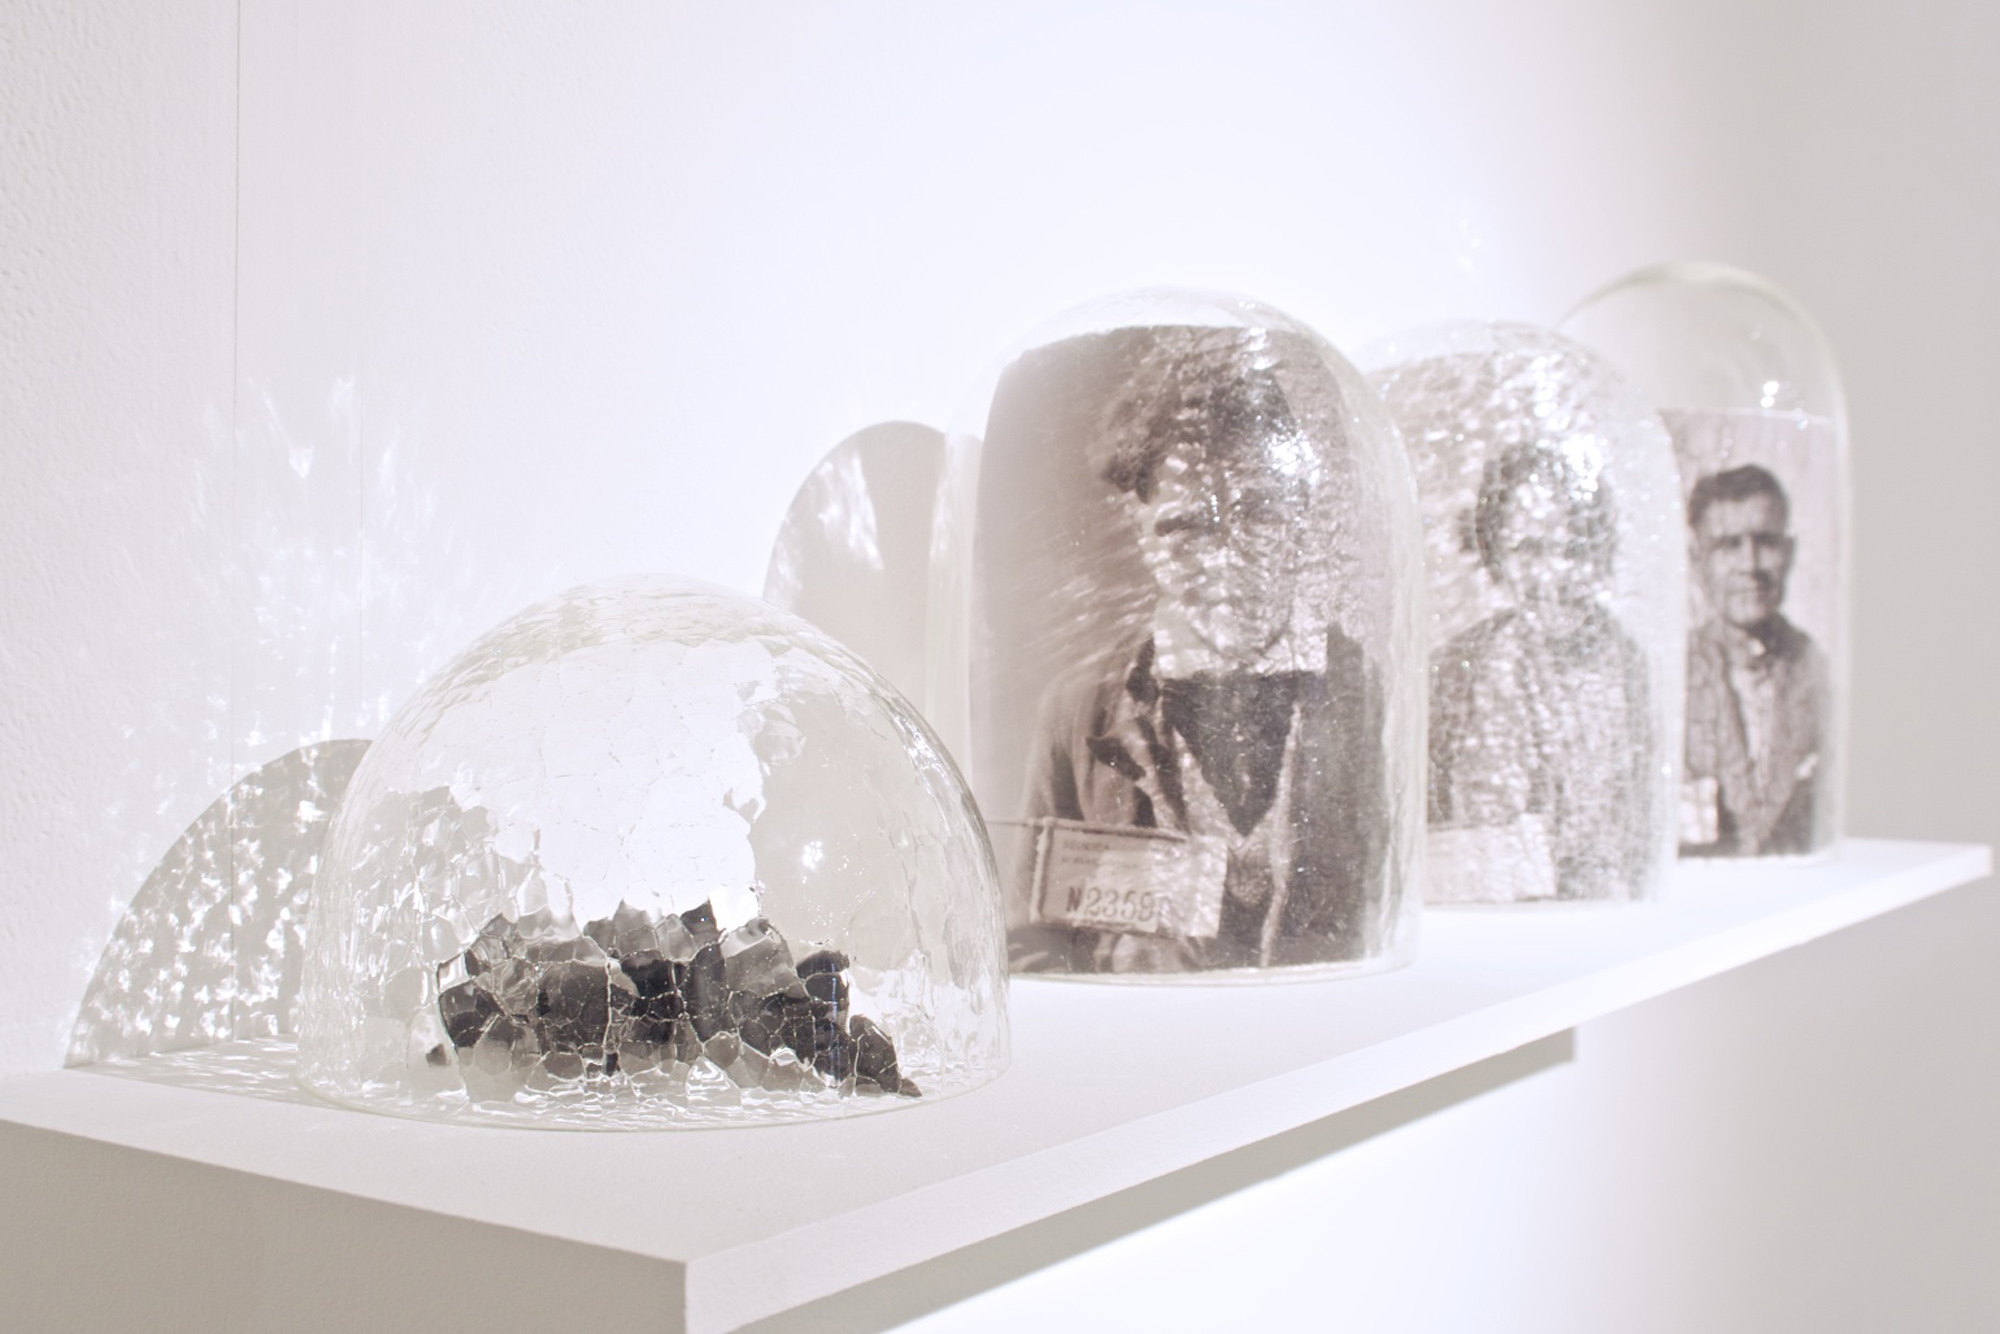 In 2013 Yhonnie Scarce was invited to submit work for the biennial National Artists' Self-Portrait Prize, overseen by the University of Queensland Art Museum. Glass domes, family photographs from the Tindale Collection. Photography by Alex Lofty.